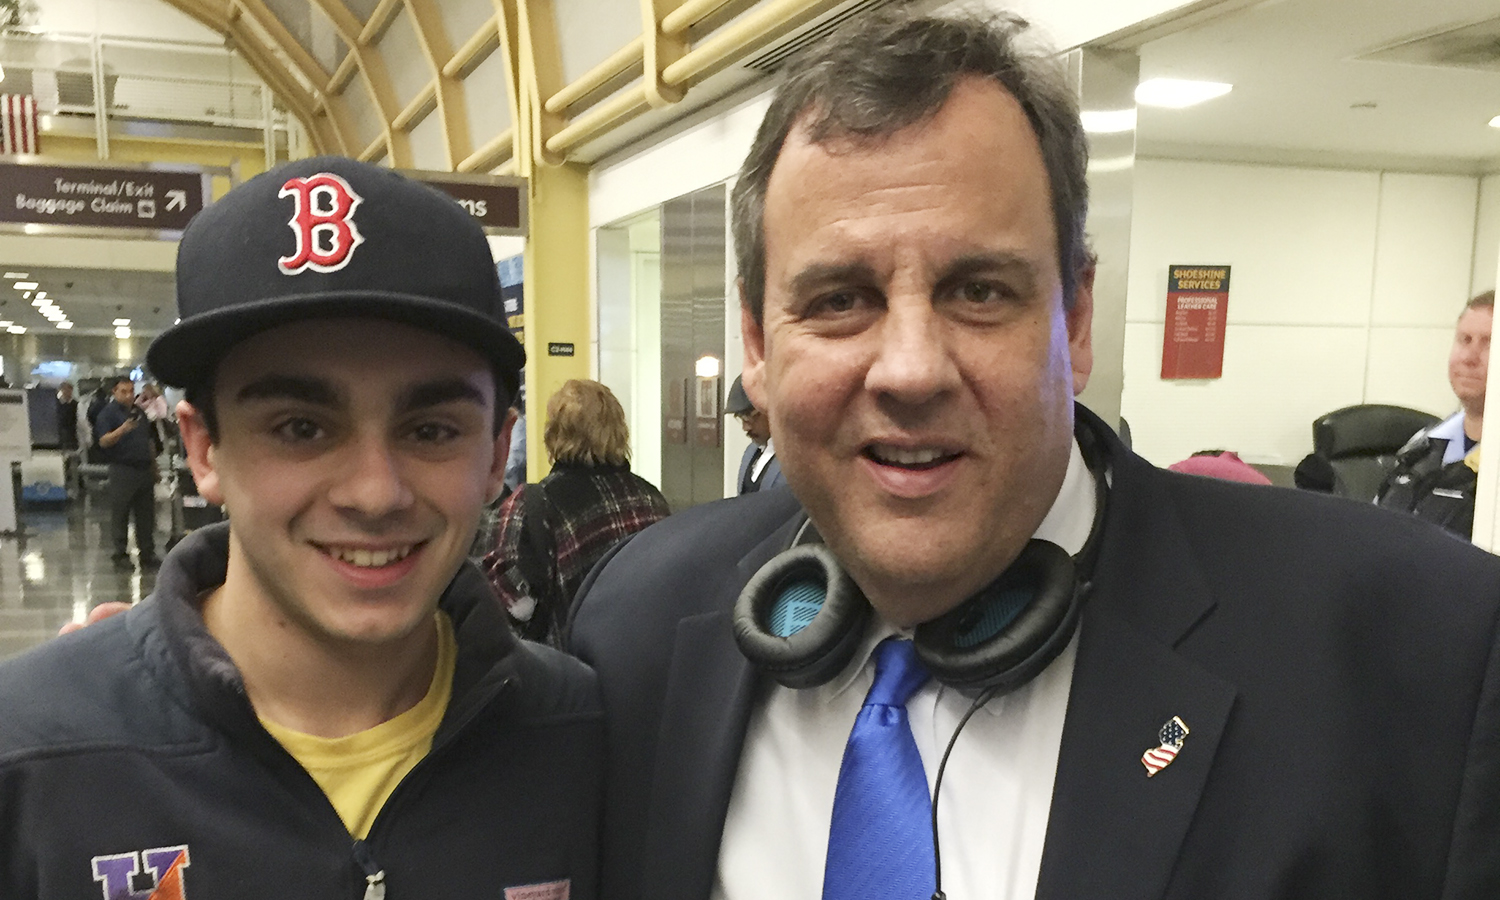 August Savarese H'17 with Governor Chris Christie in Reagan International Airport